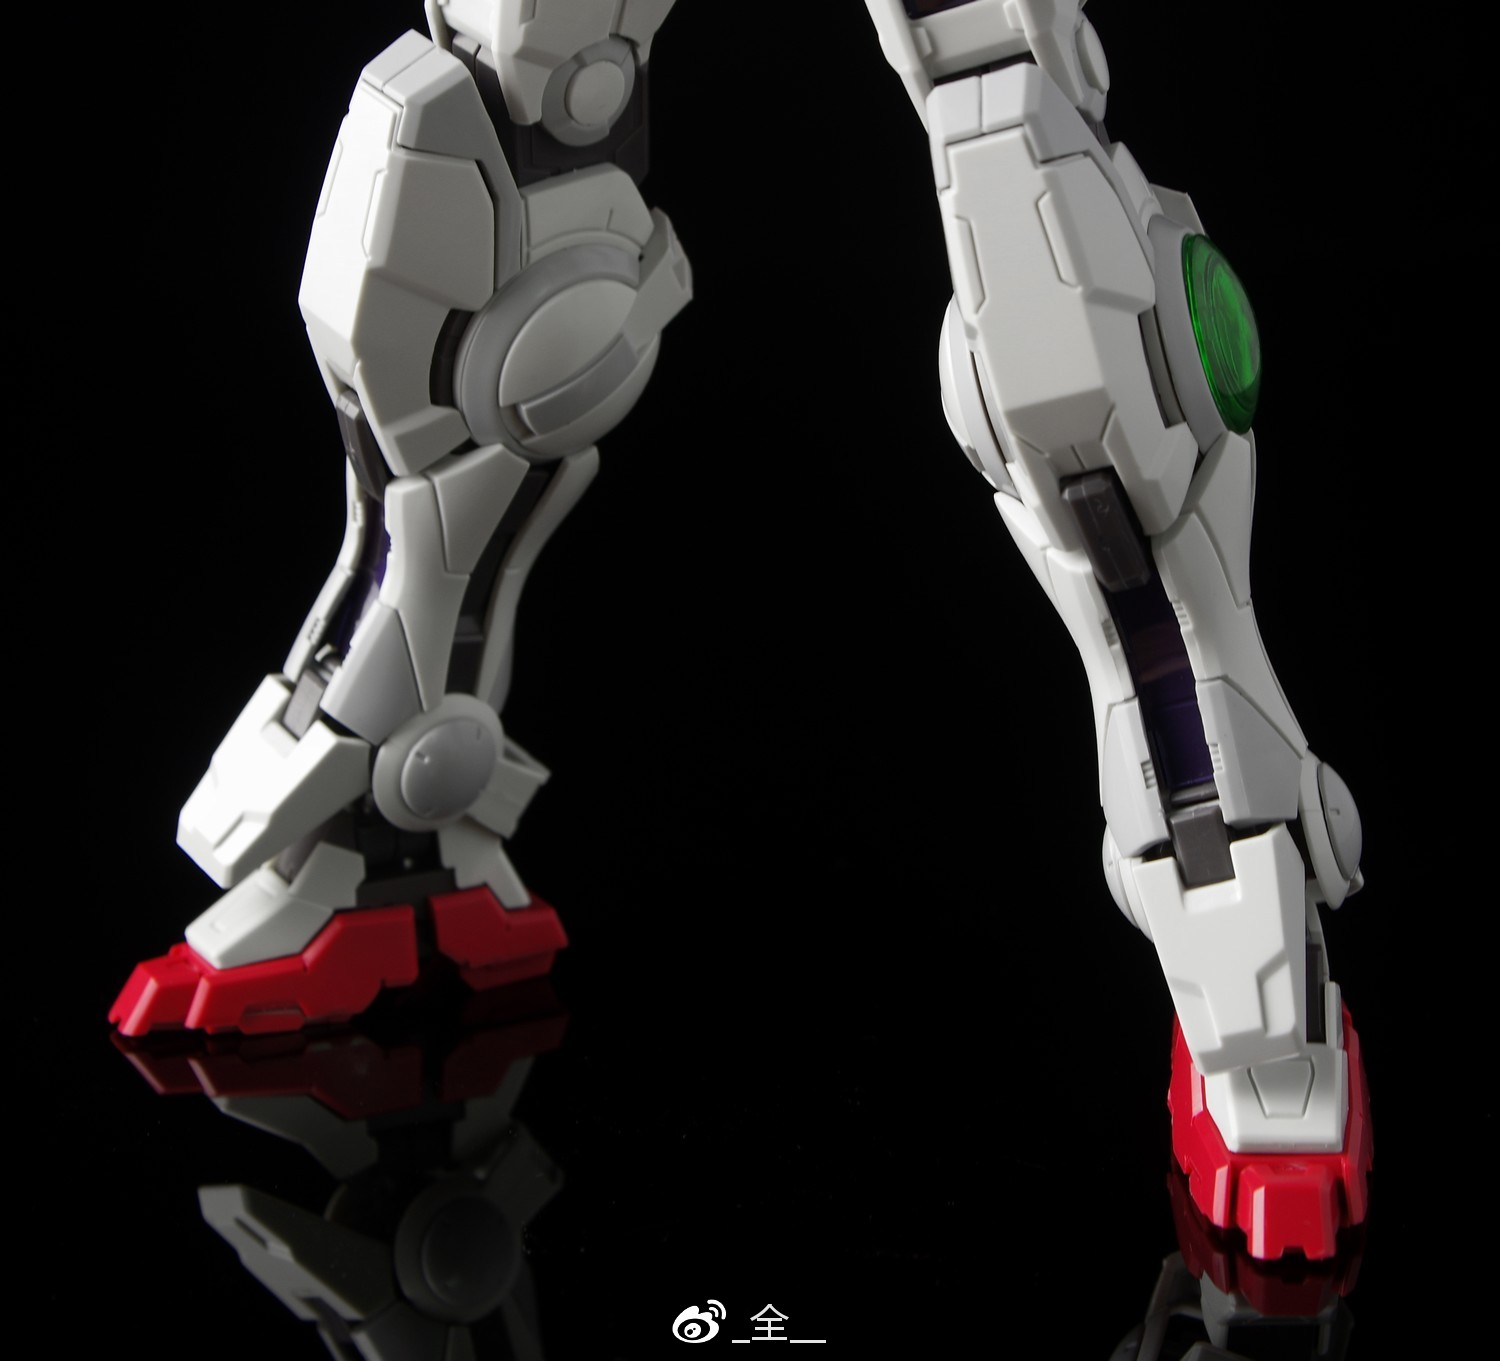 S269_mg_exia_led_hobby_star_inask_042.jpg